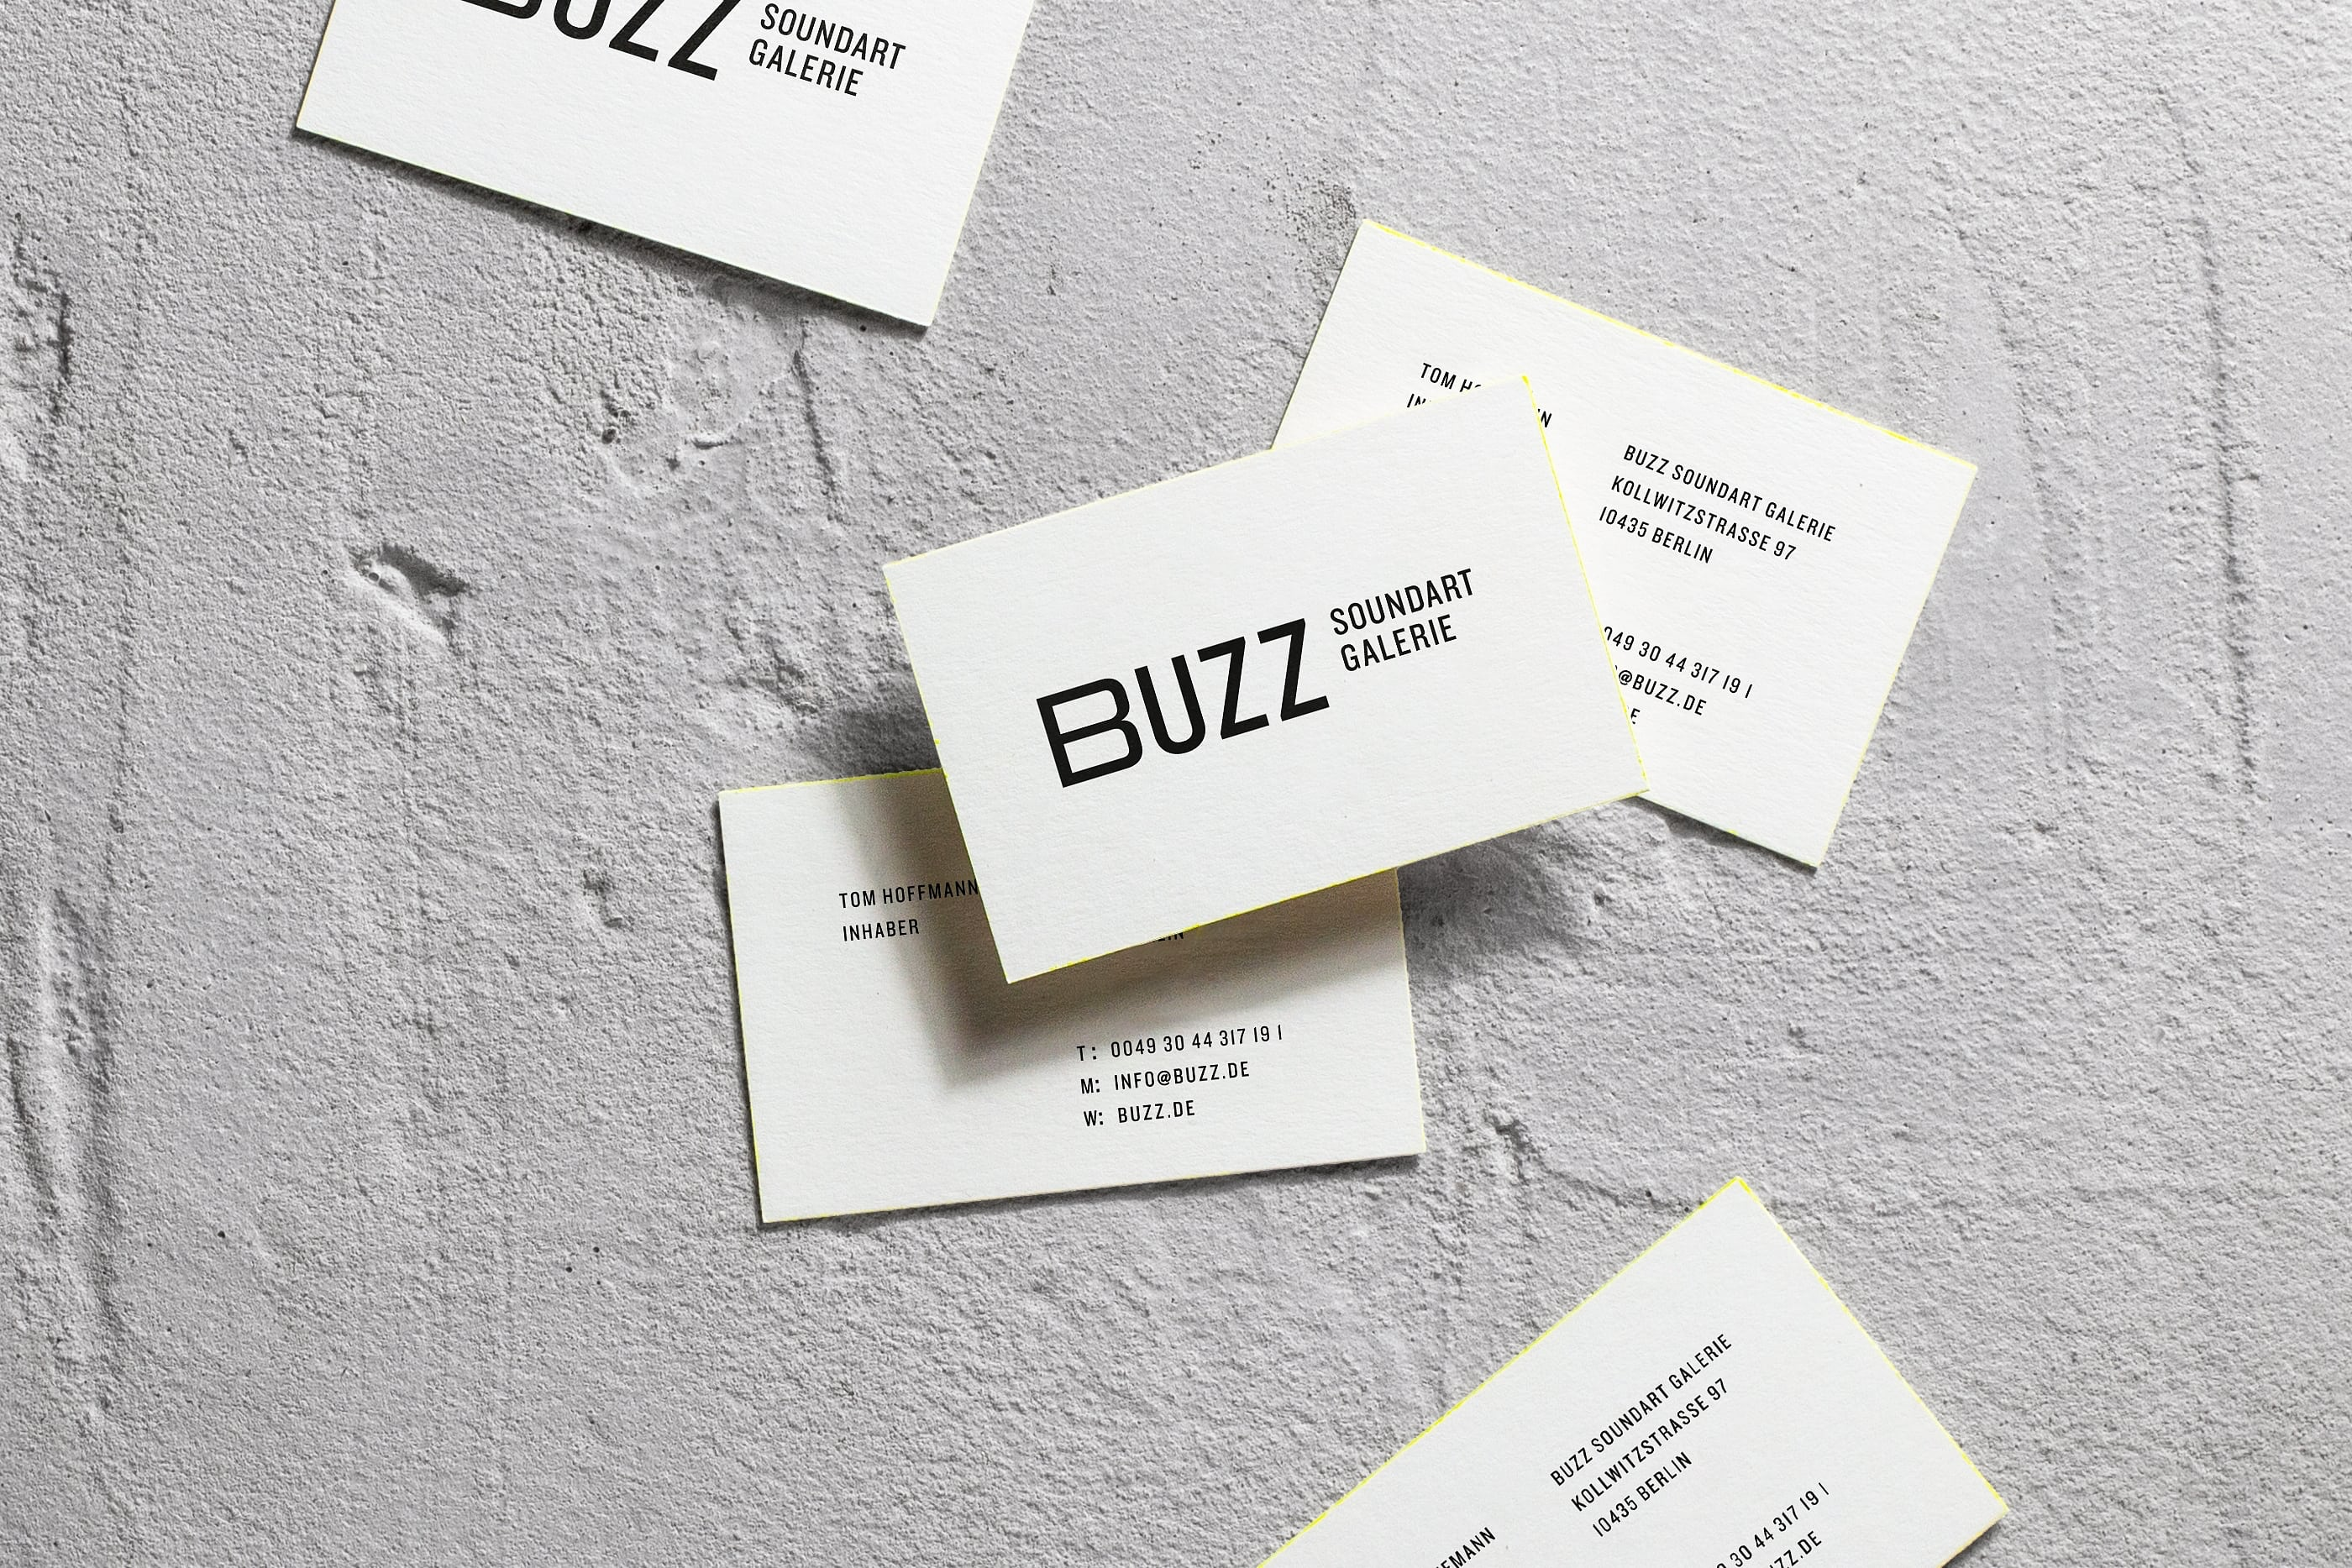 Brand Positioning an Avant-Garde One of a Kind Exhibition Space in Berlin, Germany